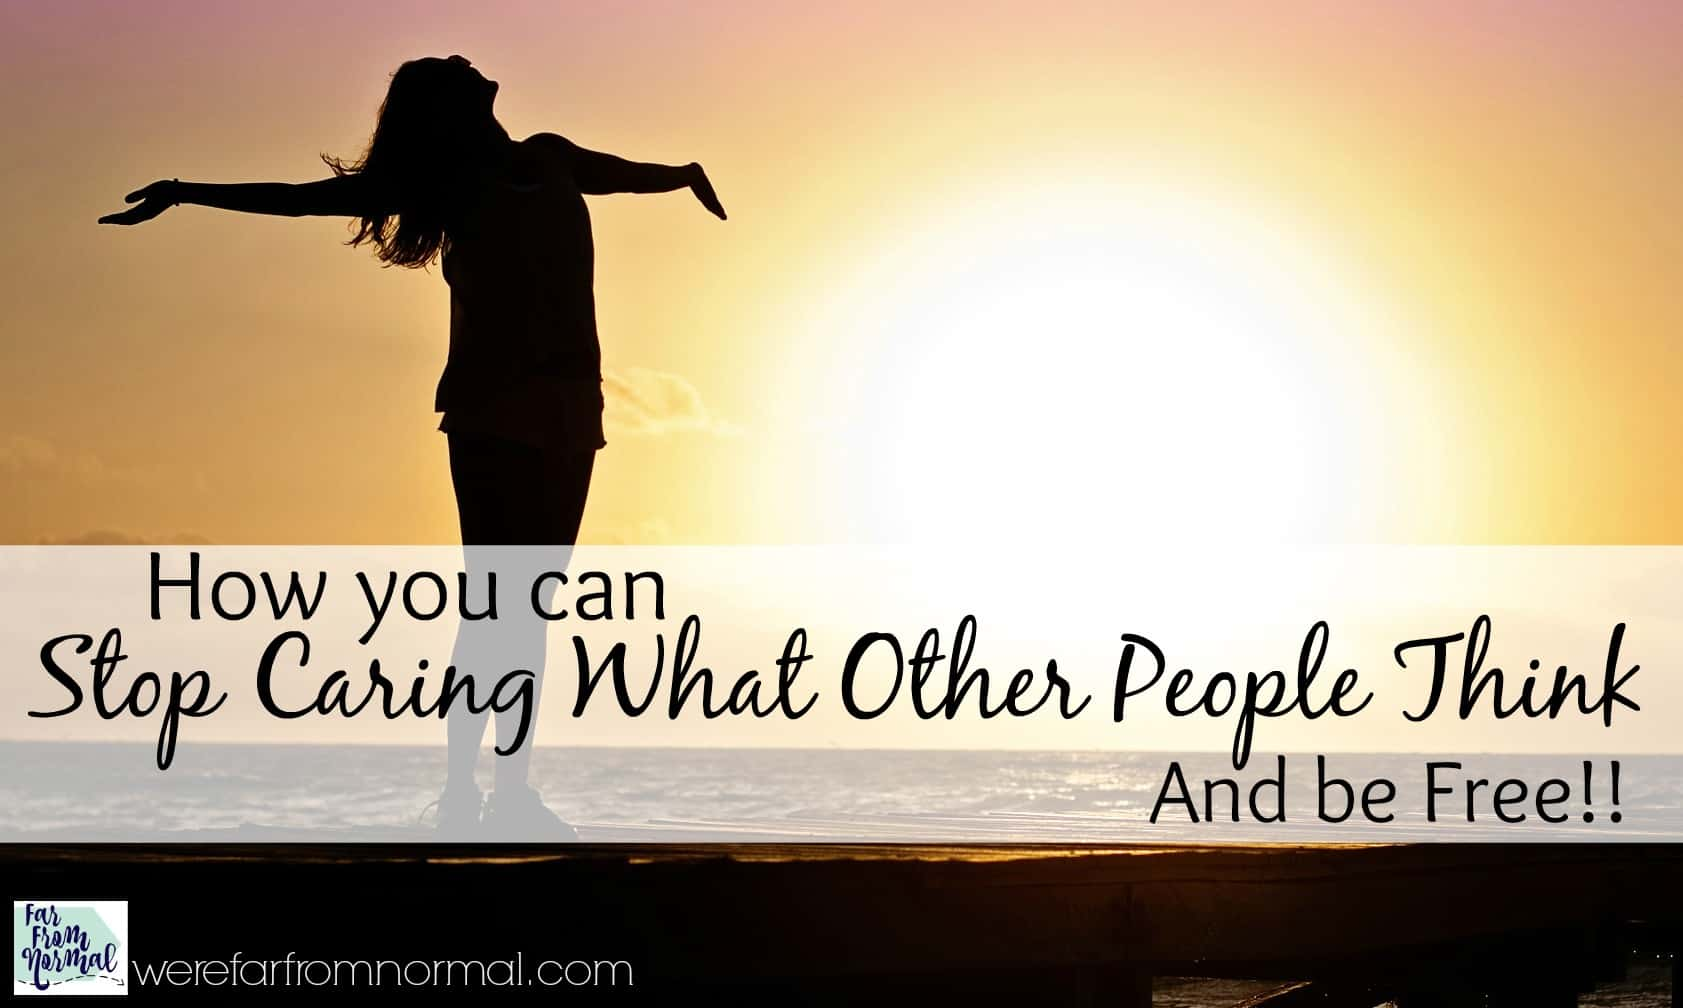 How You Can Stop Caring What Other People Think and Be Free!